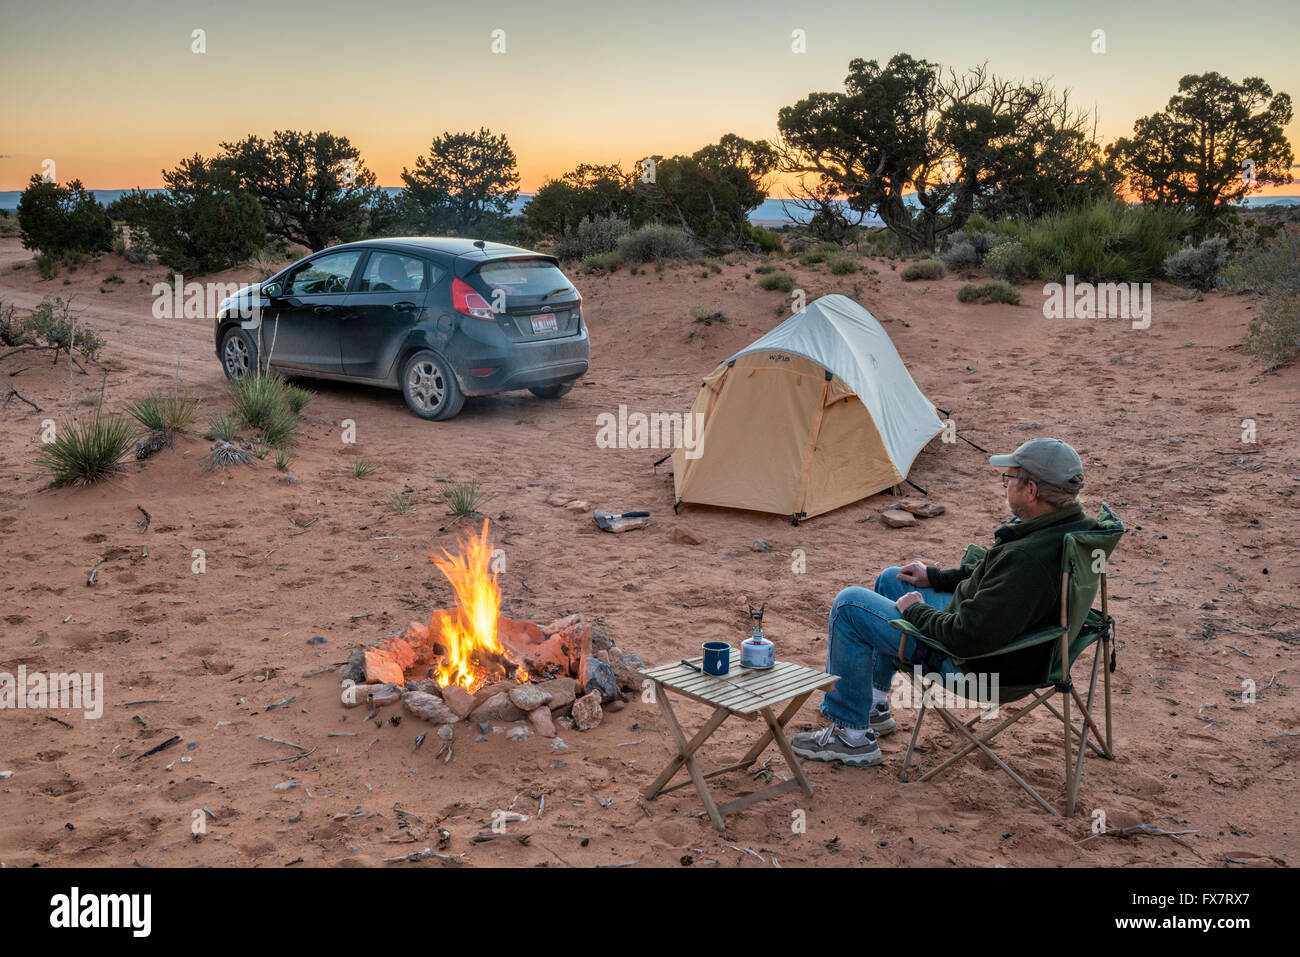 Camper at campsite at sunset near Muley Point on Cedar Mesa, Utah, USA - Stock Image